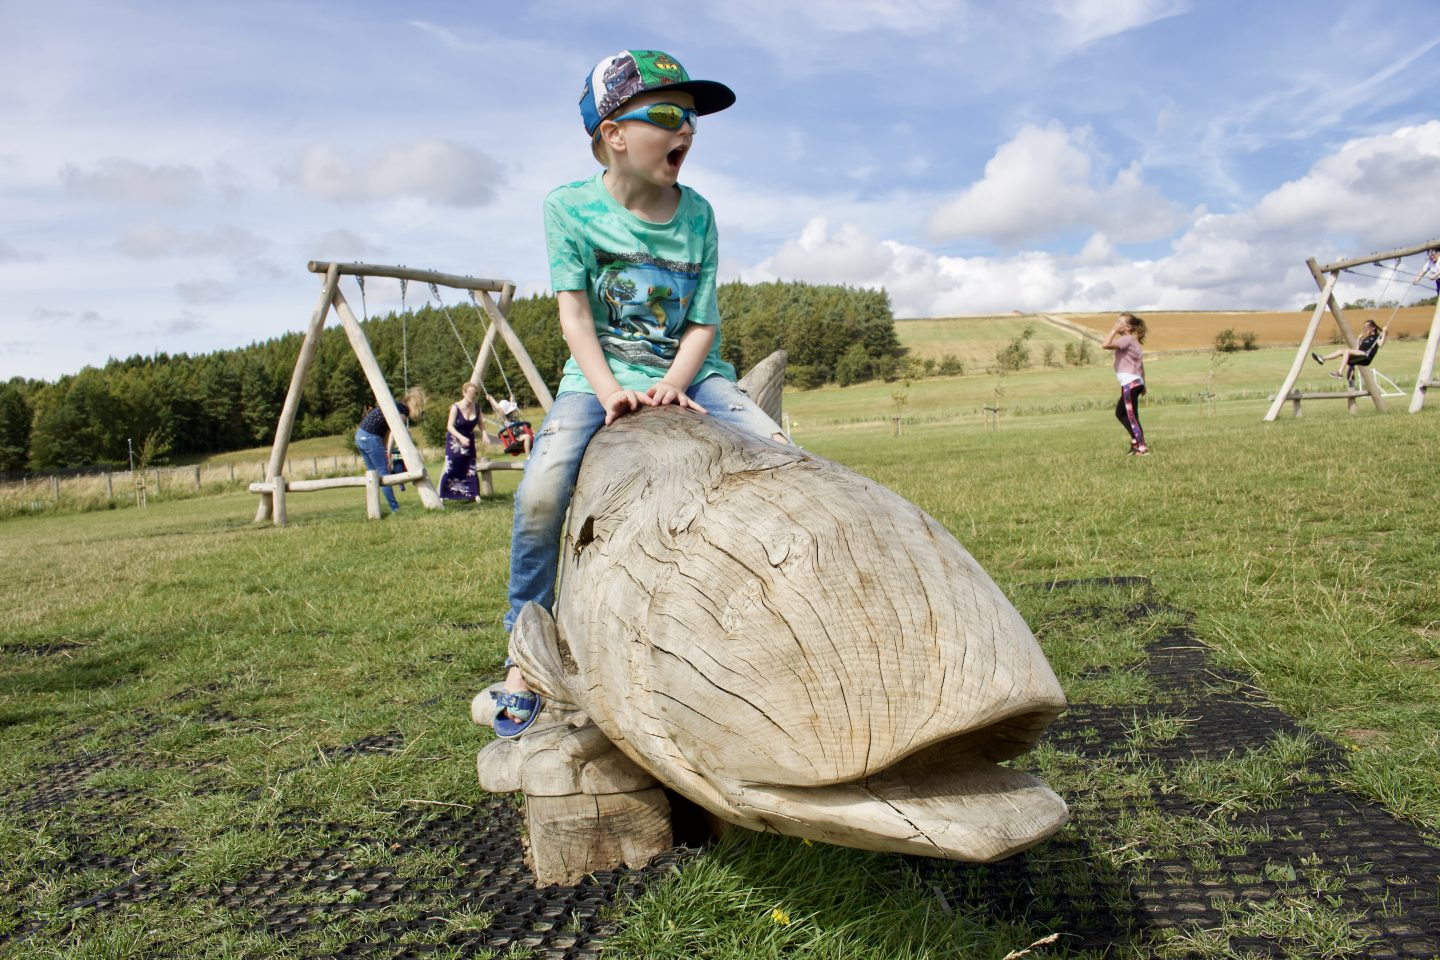 A young boy pretending to ride a large wooden whale